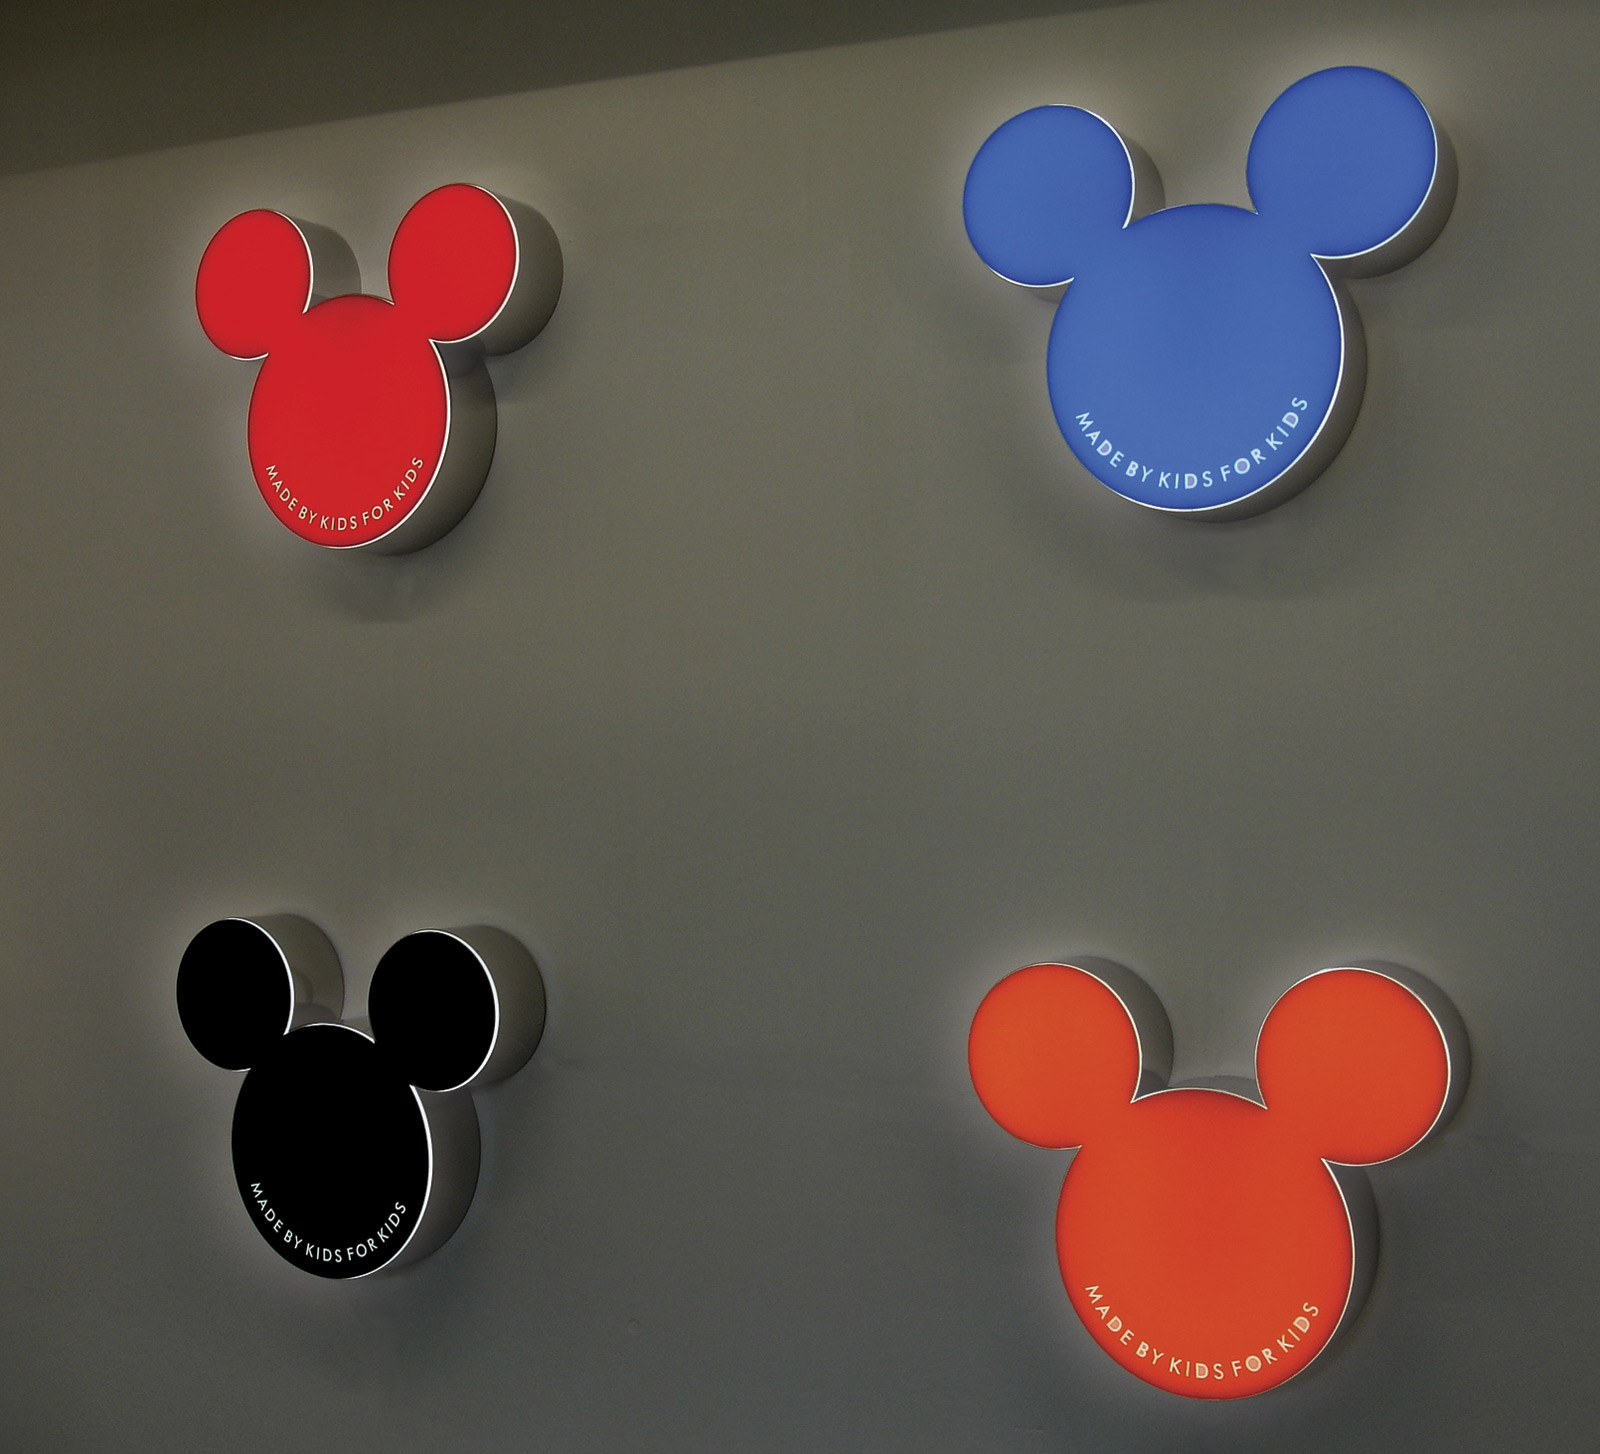 «Made by kids for kids», 2007, Lightbox on stainless steel, 65 x 55 x 13 cm each